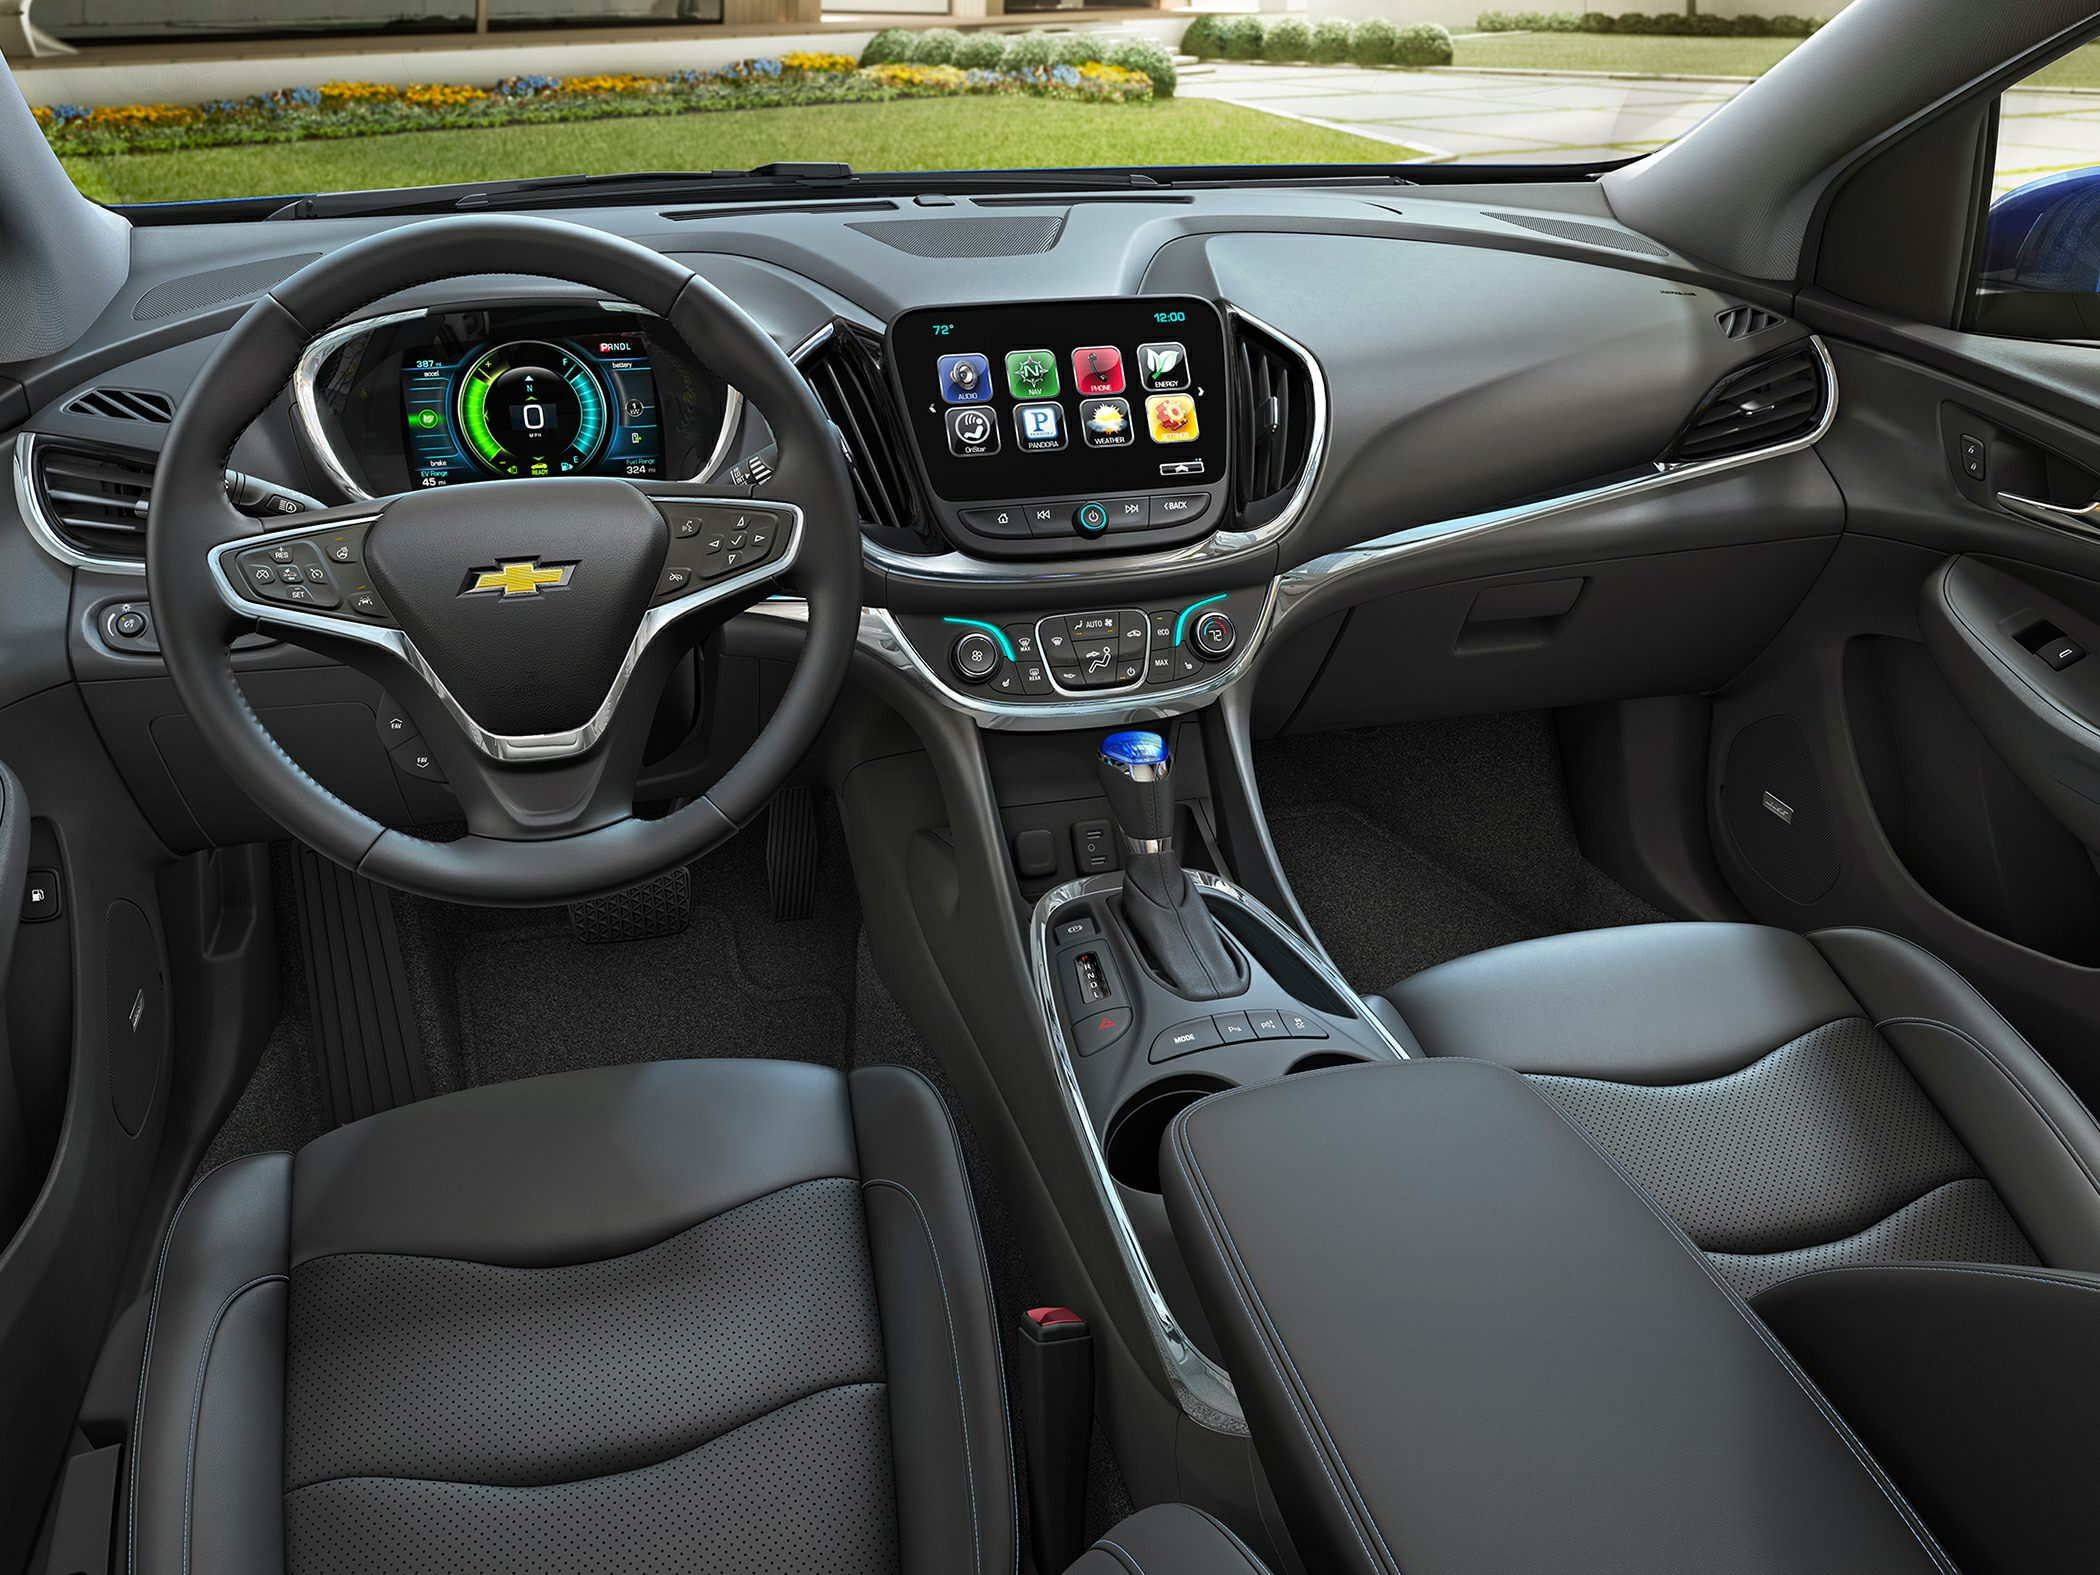 Chevy Volt Lease Cost >> 2018 Chevrolet Volt Deals Prices Incentives Leases Overview